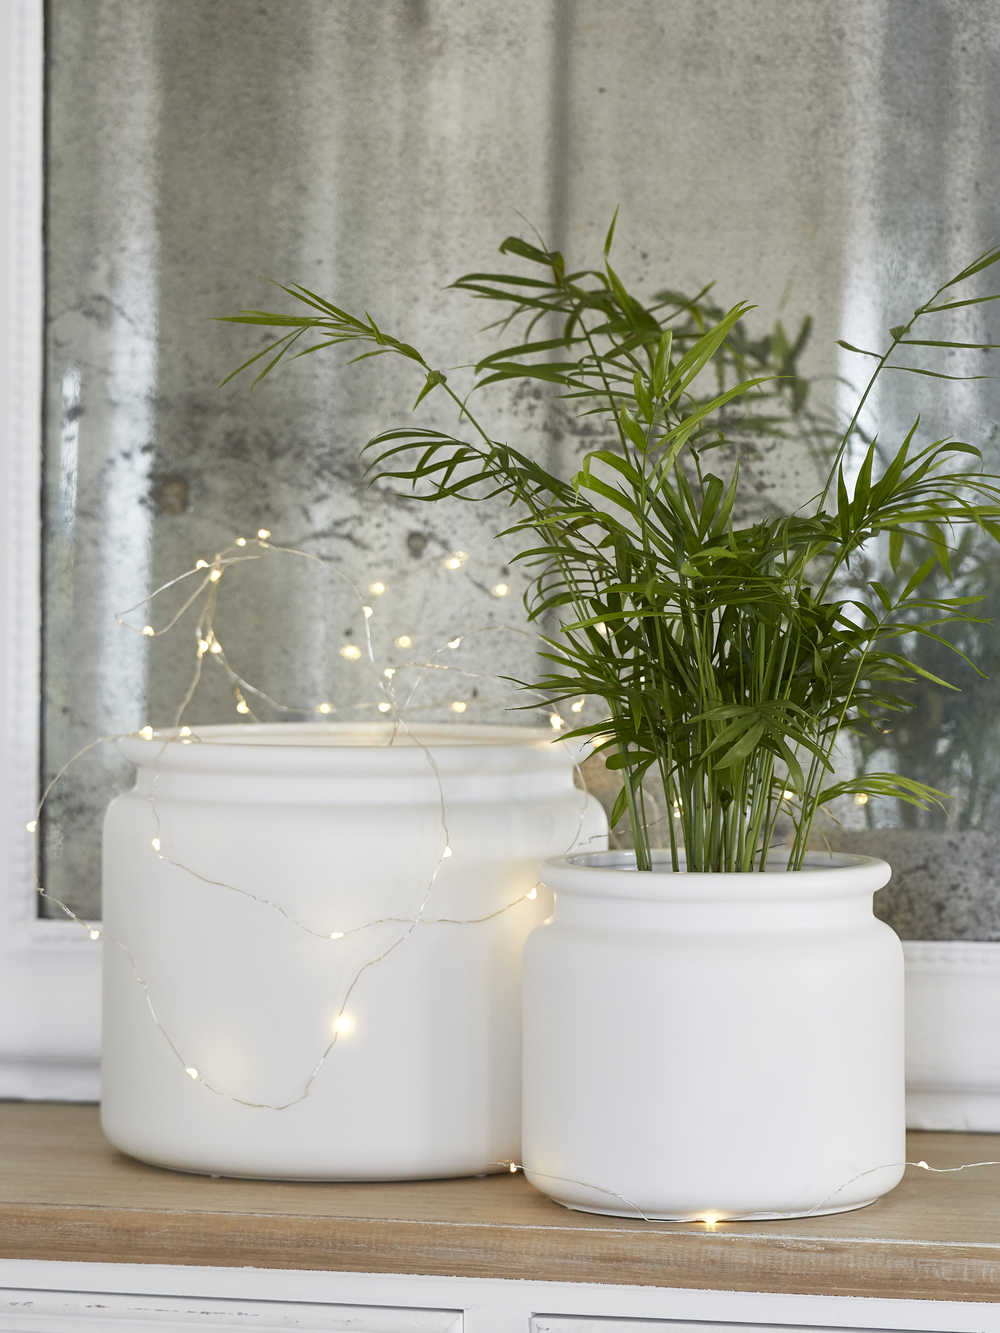 White Ceramic Planters Indoor Ceramic Plant Pots Nordic House